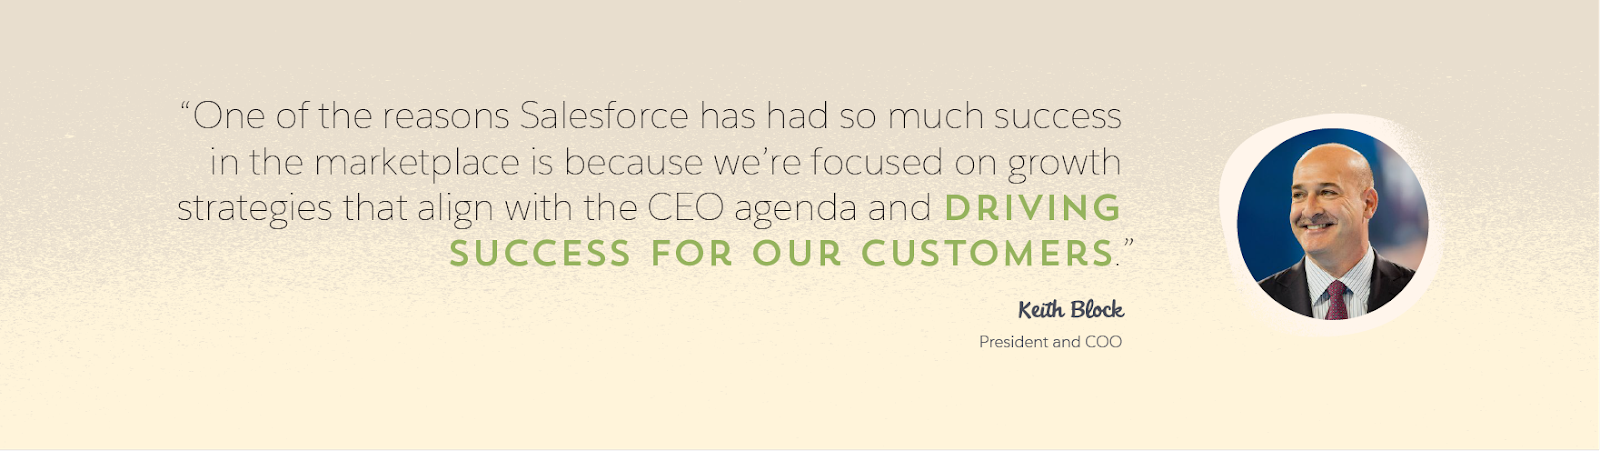 "Graphic featuring Keith Block, Salesforce president and COO, and a quote from him: ""One of the reasons Salesforce has had so much success in the marketplace is because we're focused on growth strategies that align with the CEO agenda and driving success for our customers."""